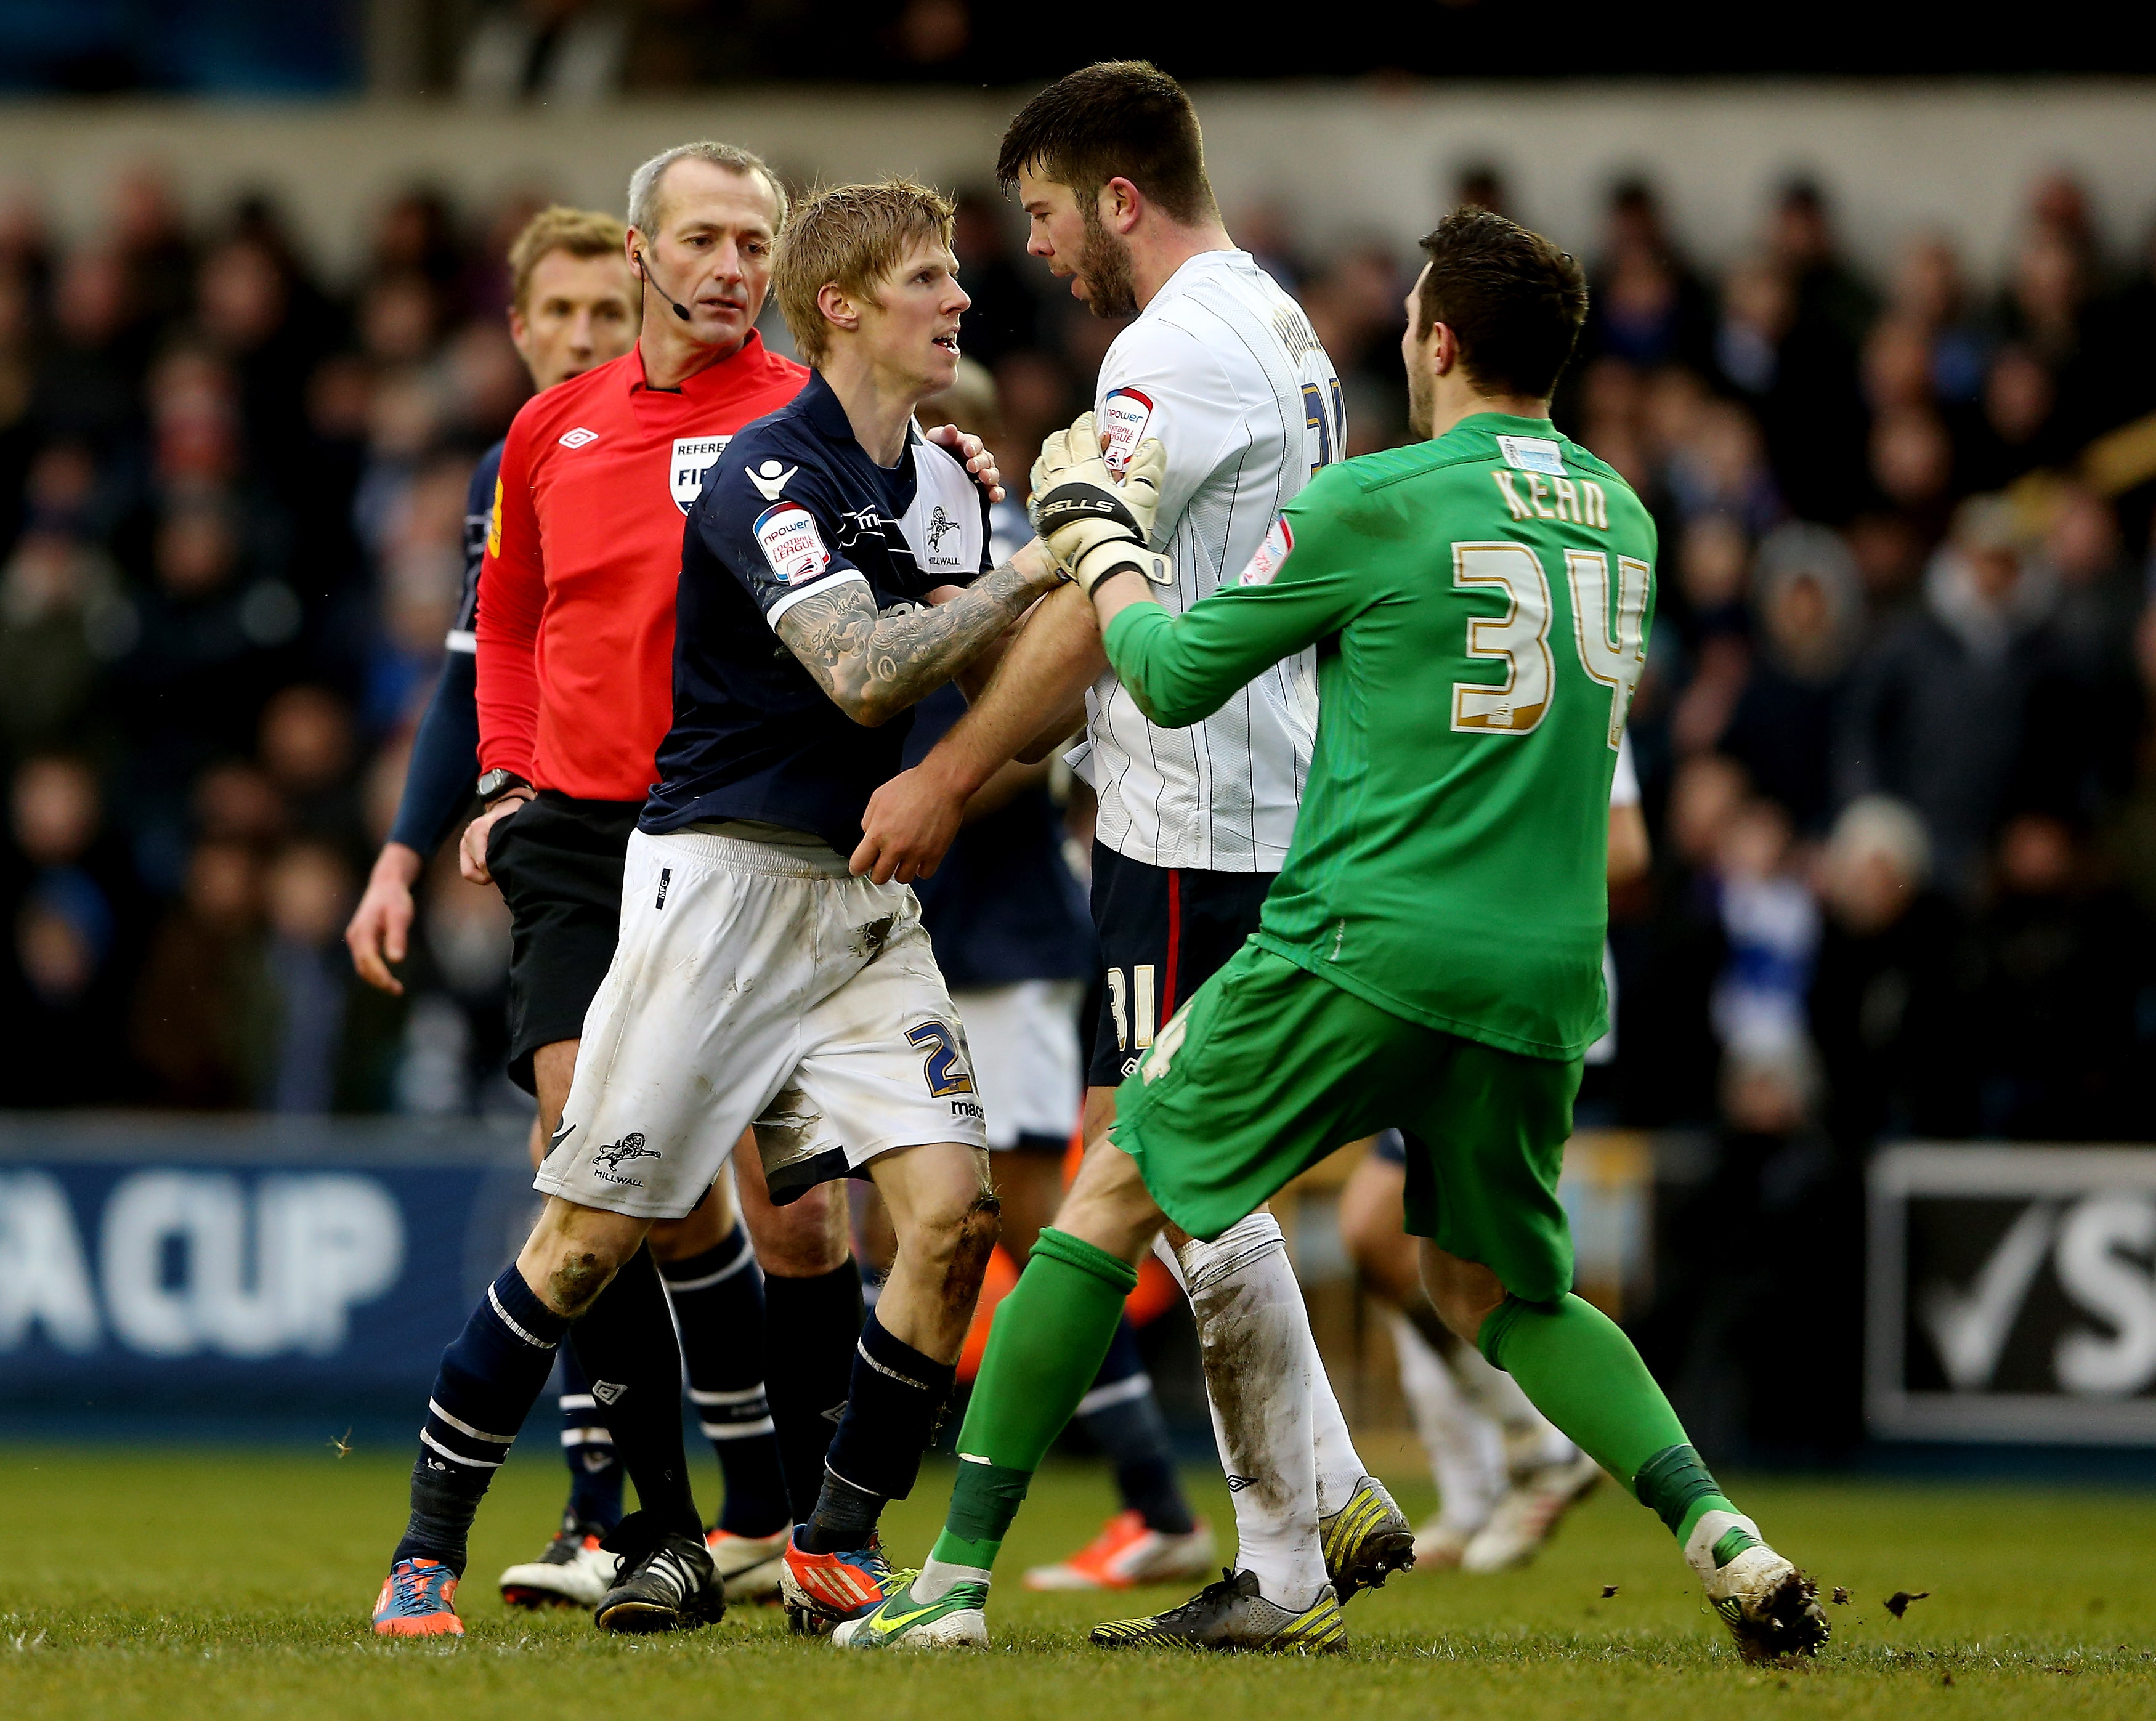 Grant Hanley doesn't take shit from anyone. Not even you, Millwall.